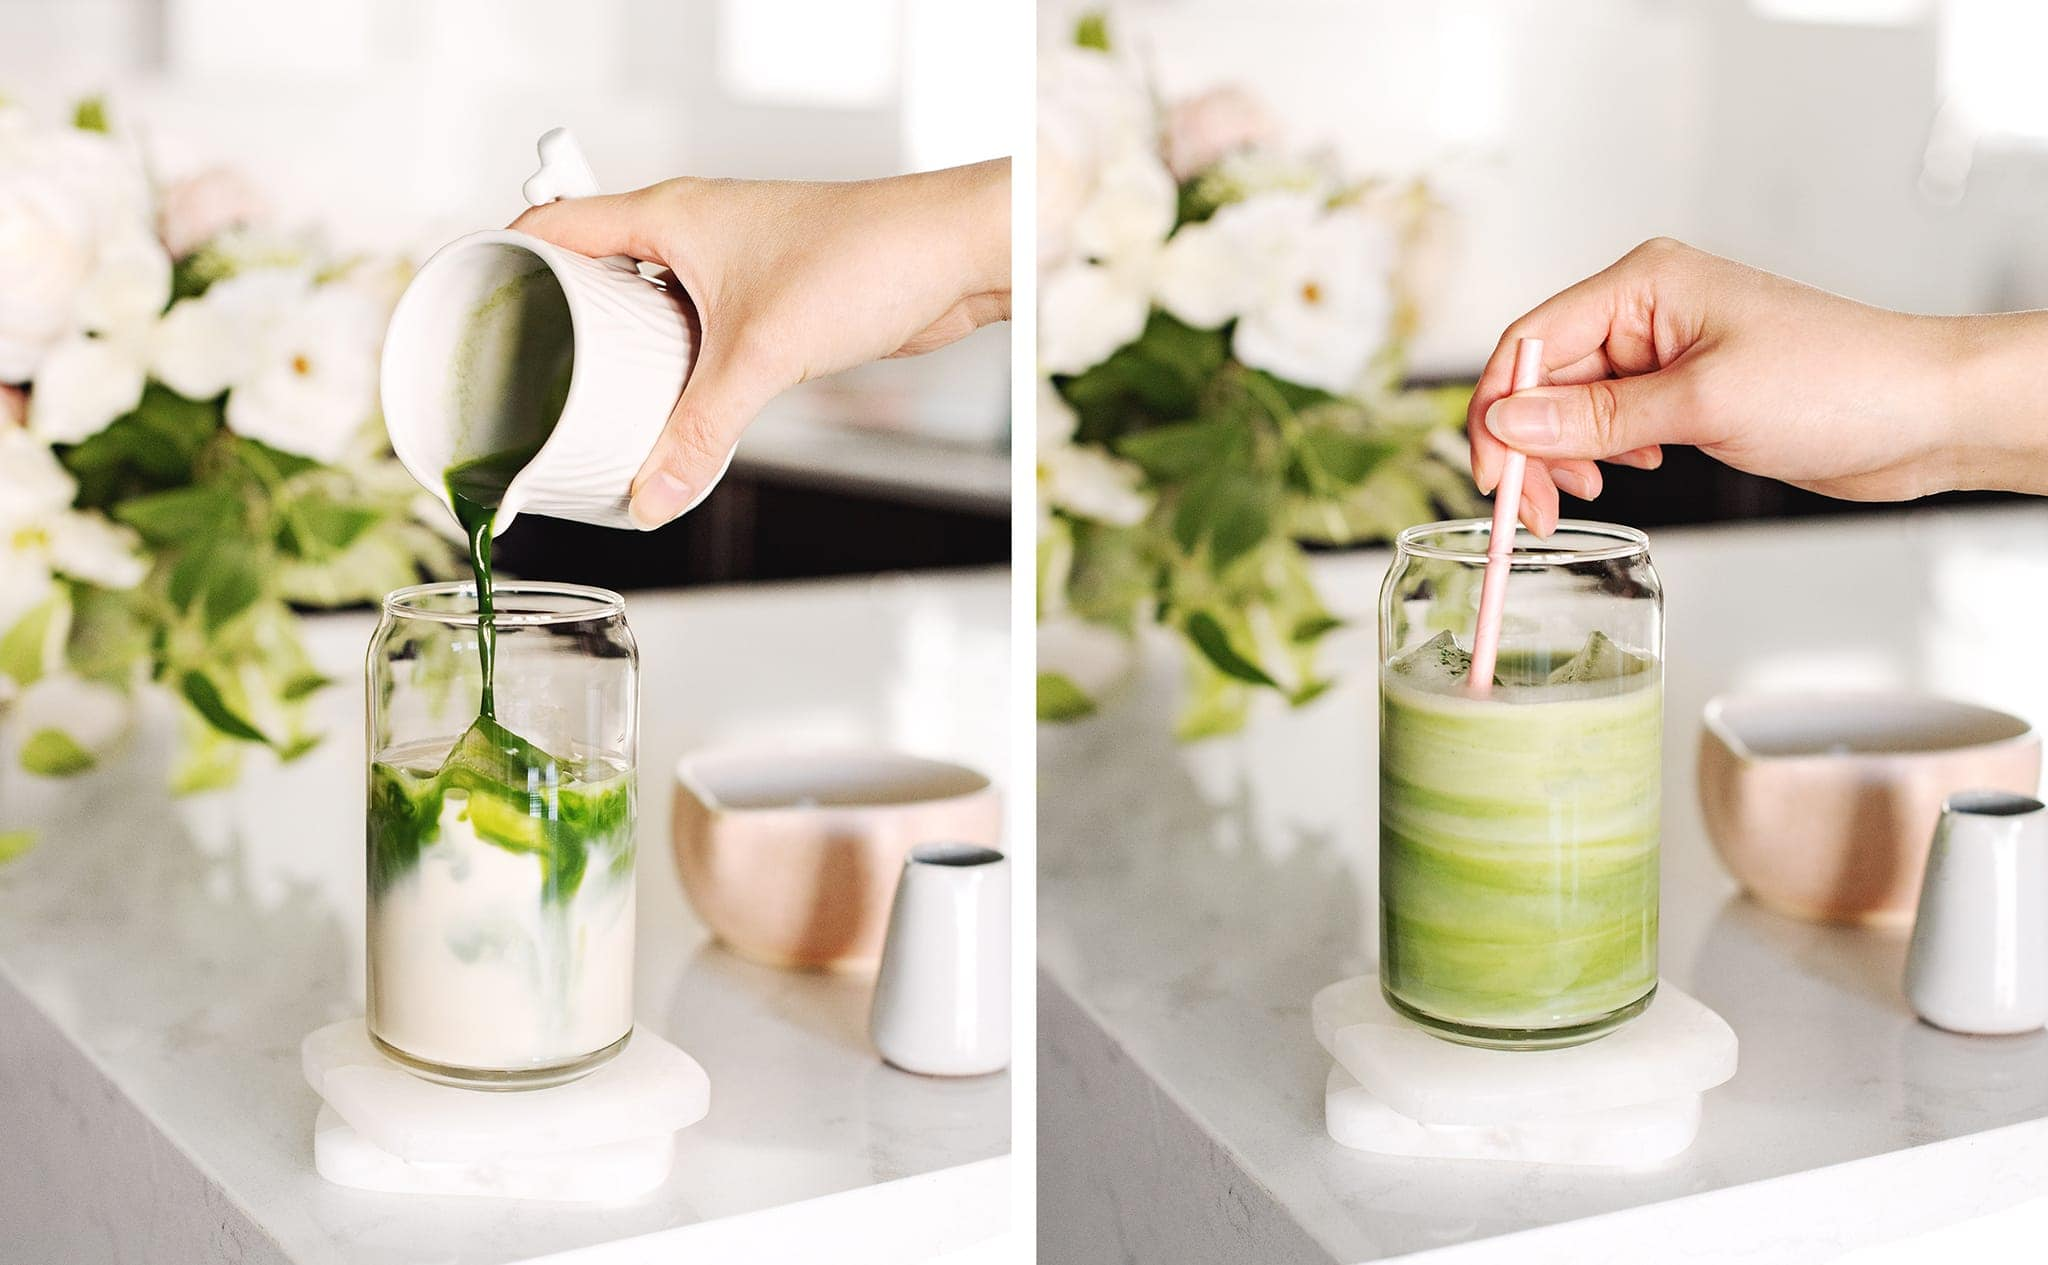 Pouring matcha into oat milk and stirring together